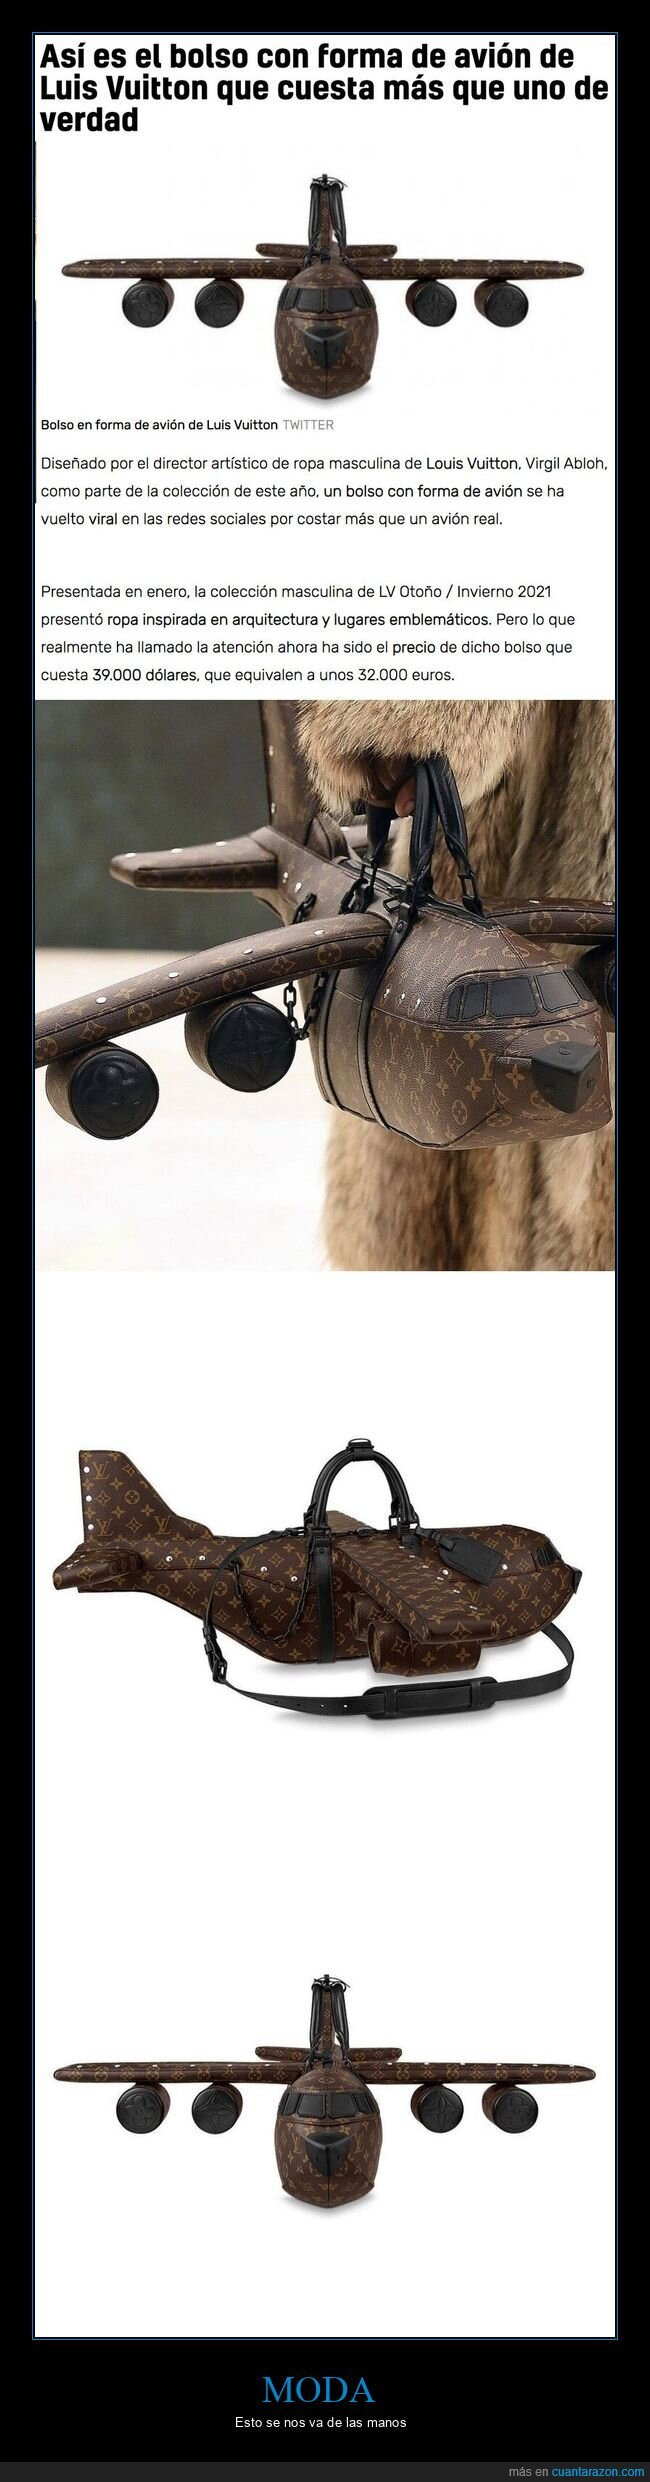 avión,bolso,louis vuitton